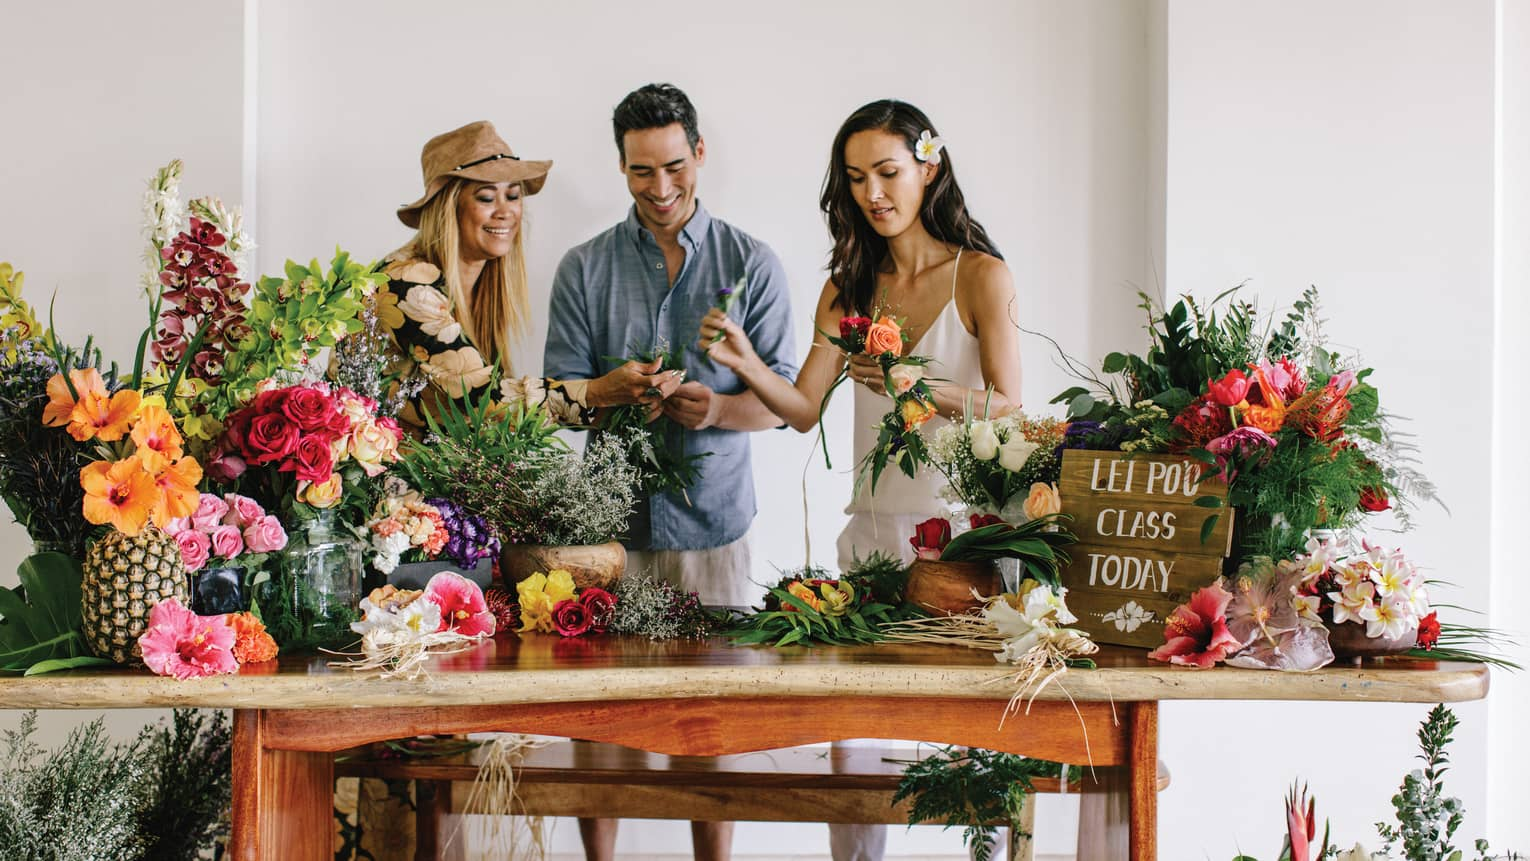 Two women and man make lei necklaces during class at wood table covered with fresh flowers